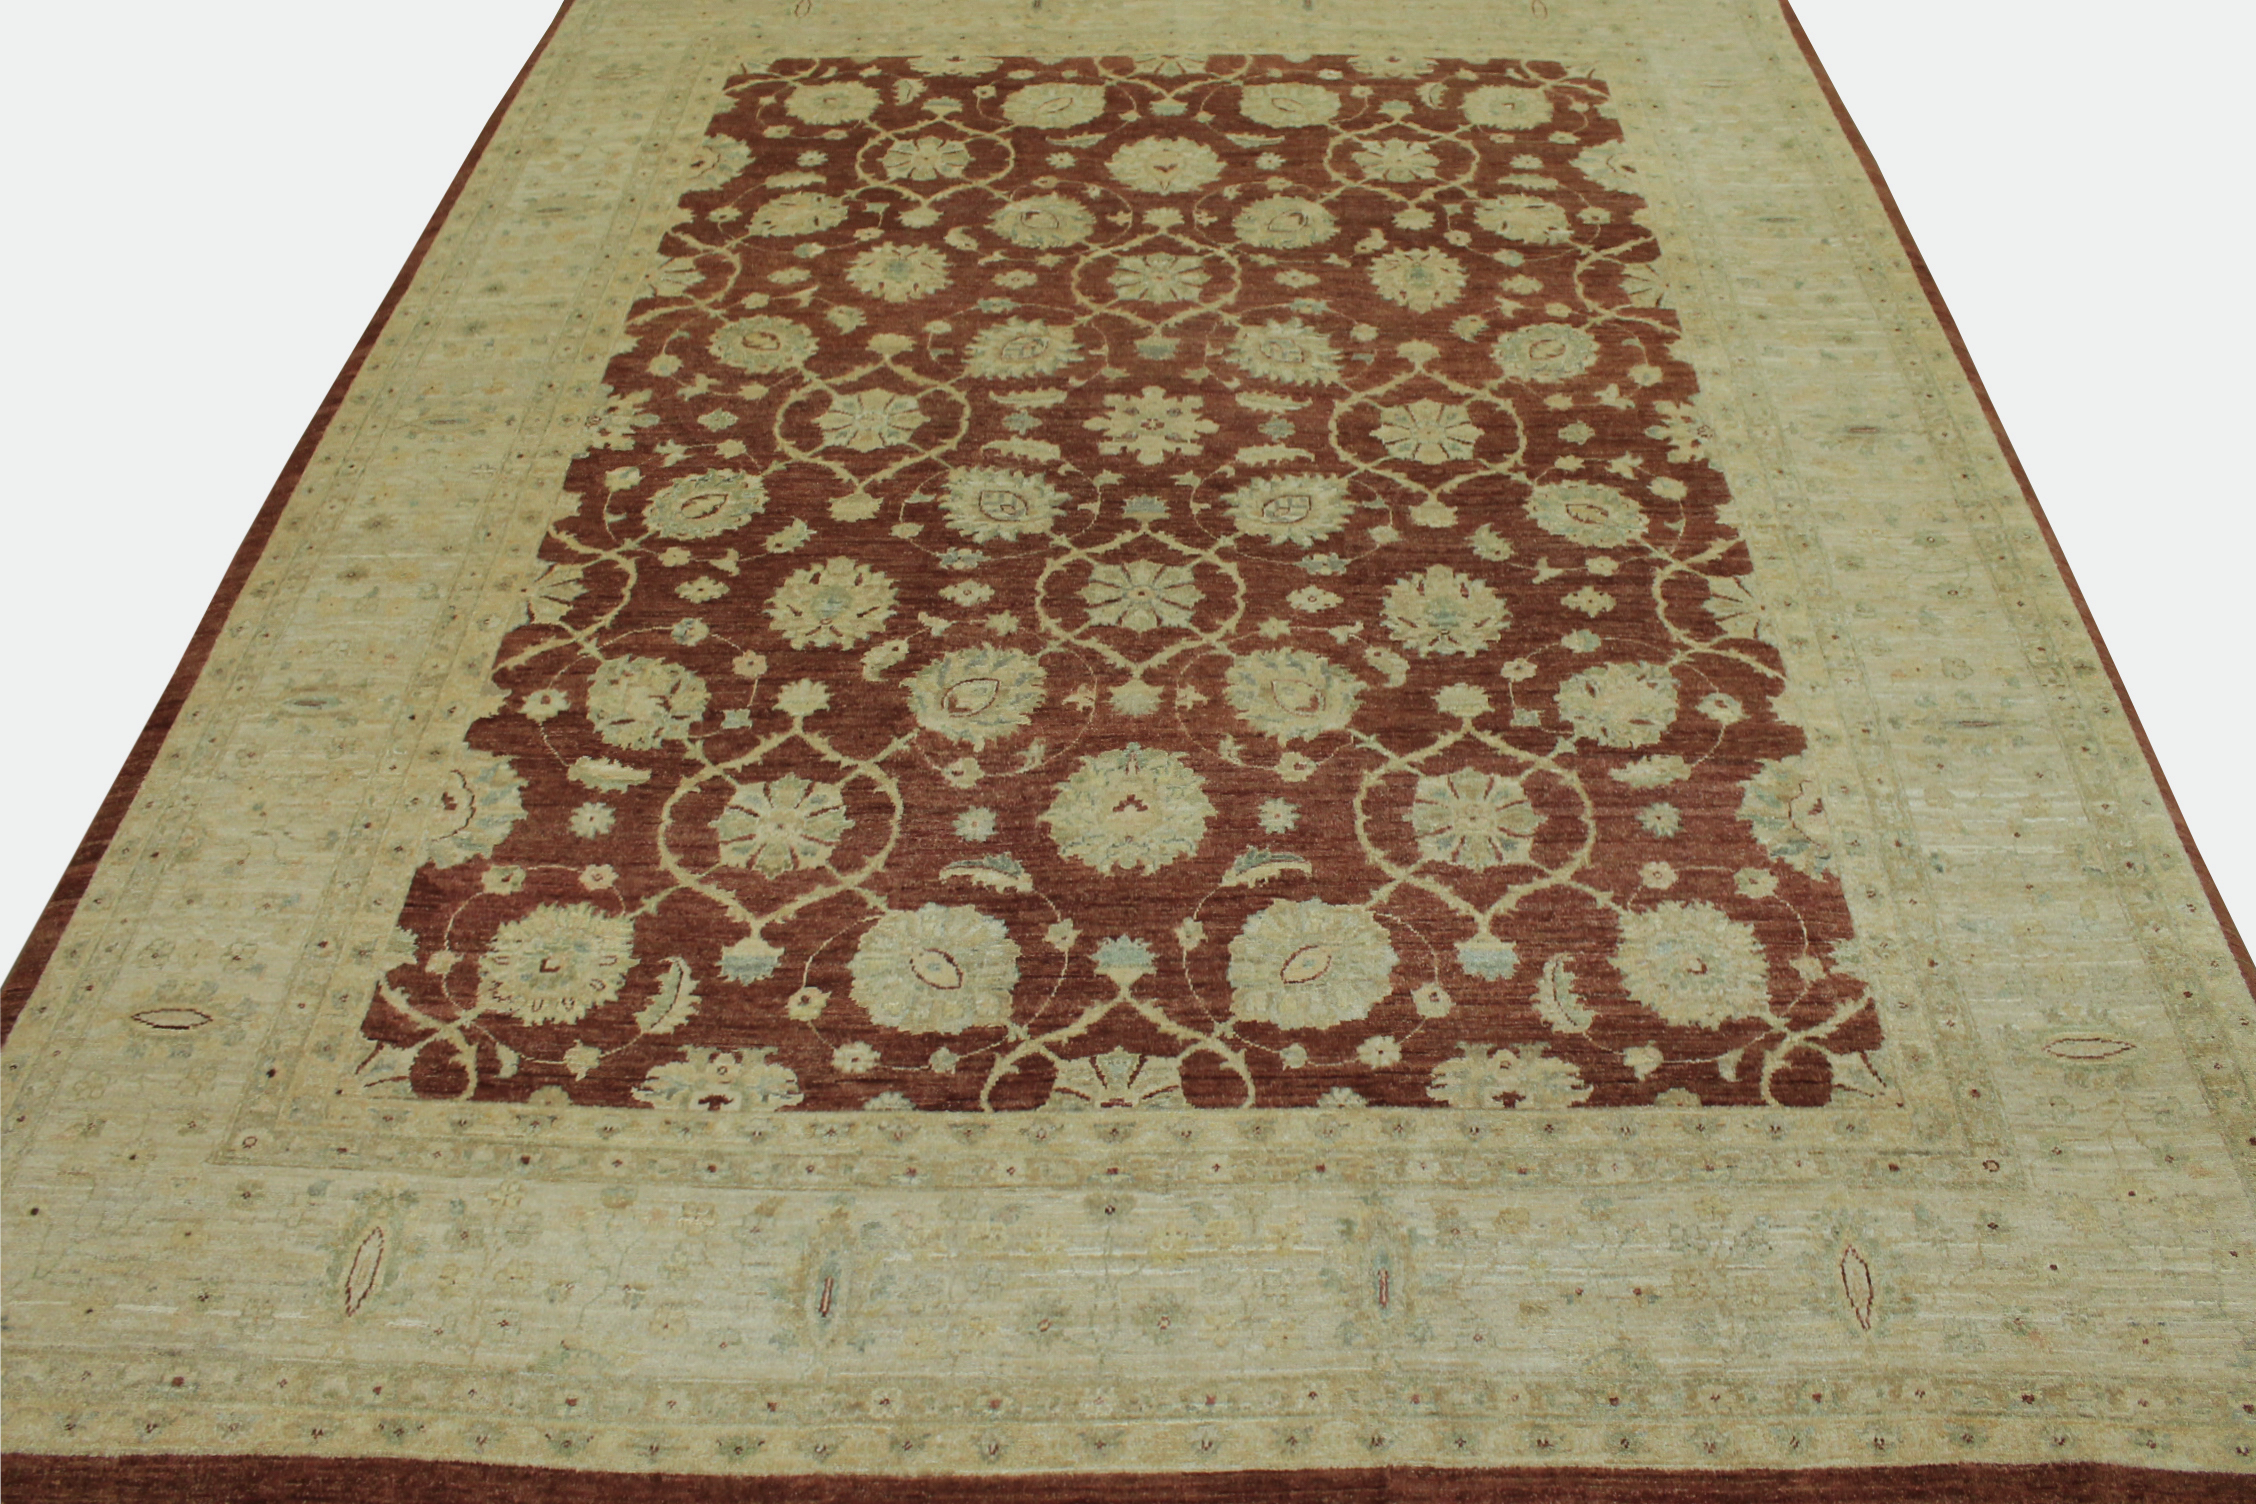 9x12 Peshawar Hand Knotted Wool Area Rug - MR11789